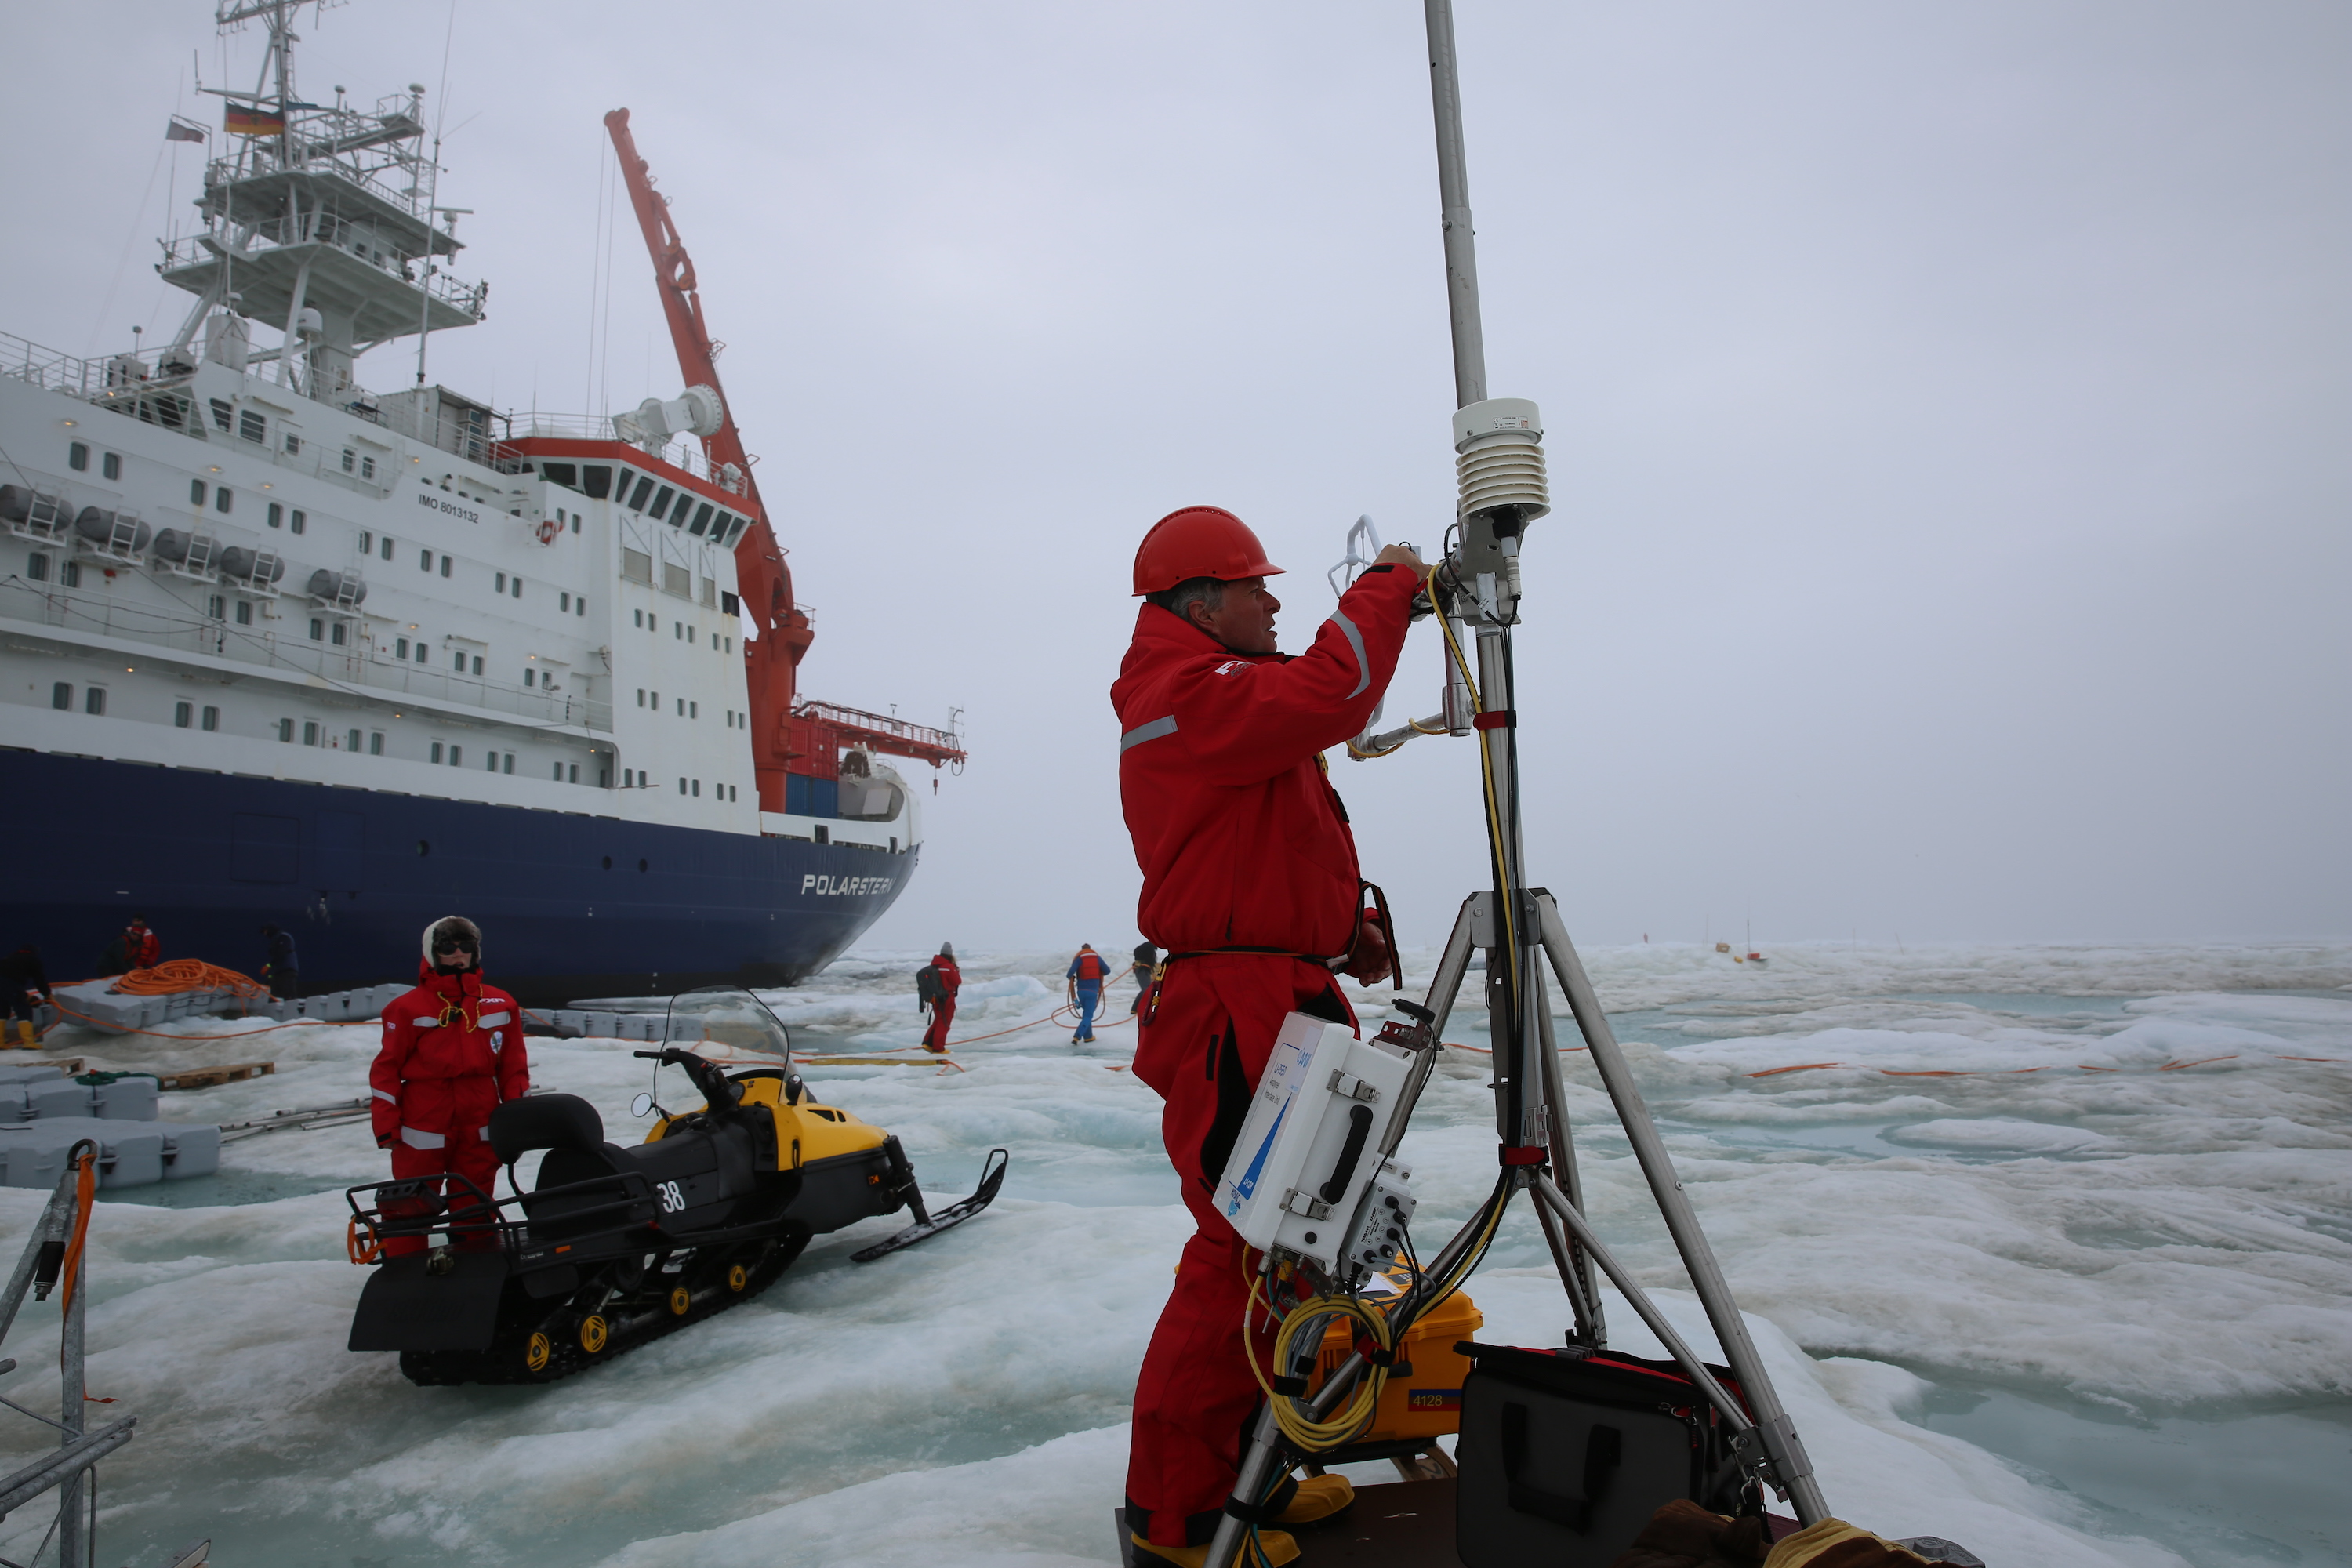 A MOSAiC team member removes sensors from an instrument before bringing it back onto the icebreaker R/V Polarstern. In the background, people recover the orange power cables, which supplied the central observatory with electricity.